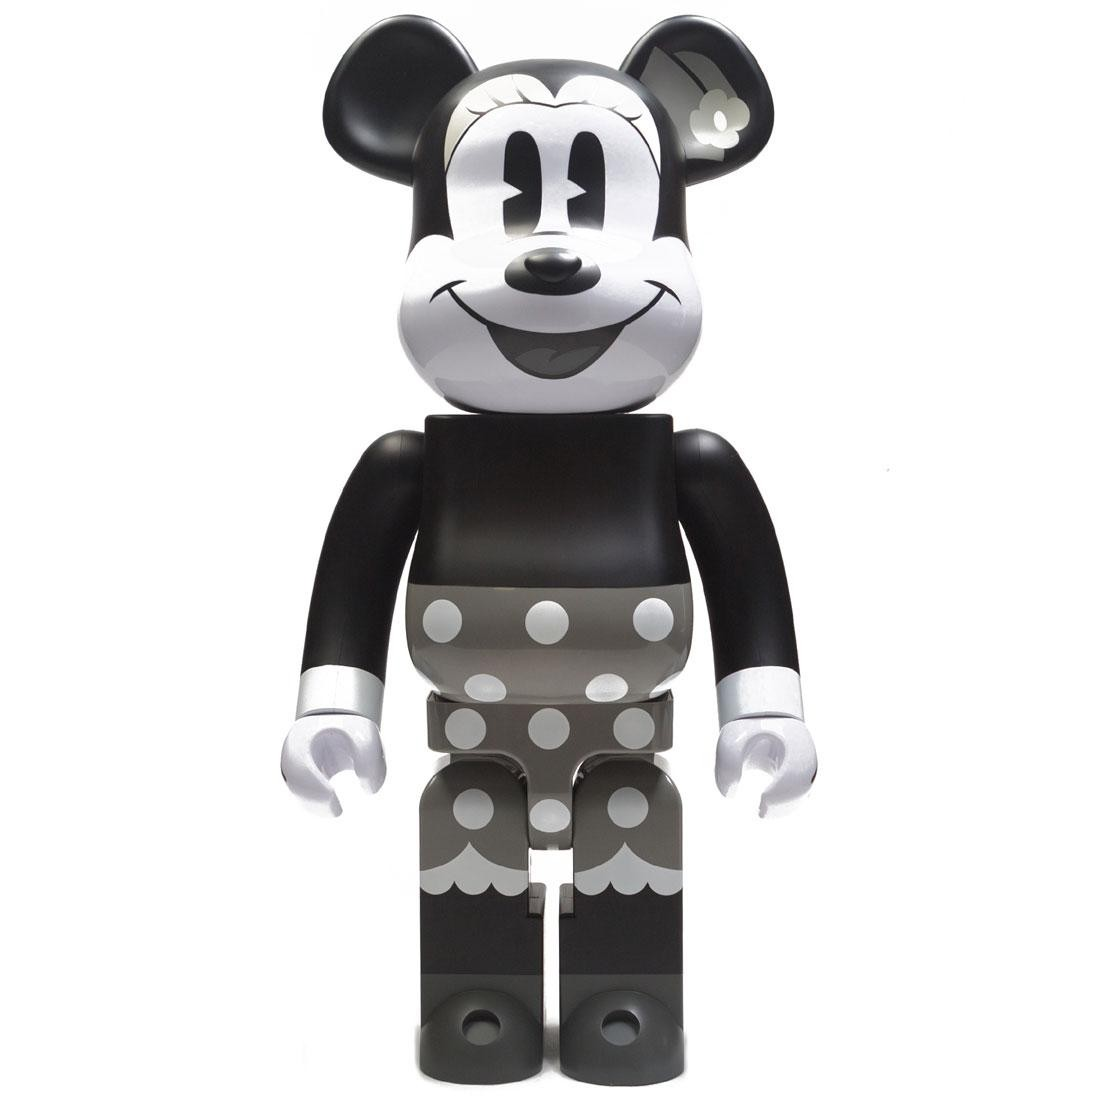 Medicom Disney Minnie Mouse Black And White Ver 1000% Bearbrick Figure (black / white)